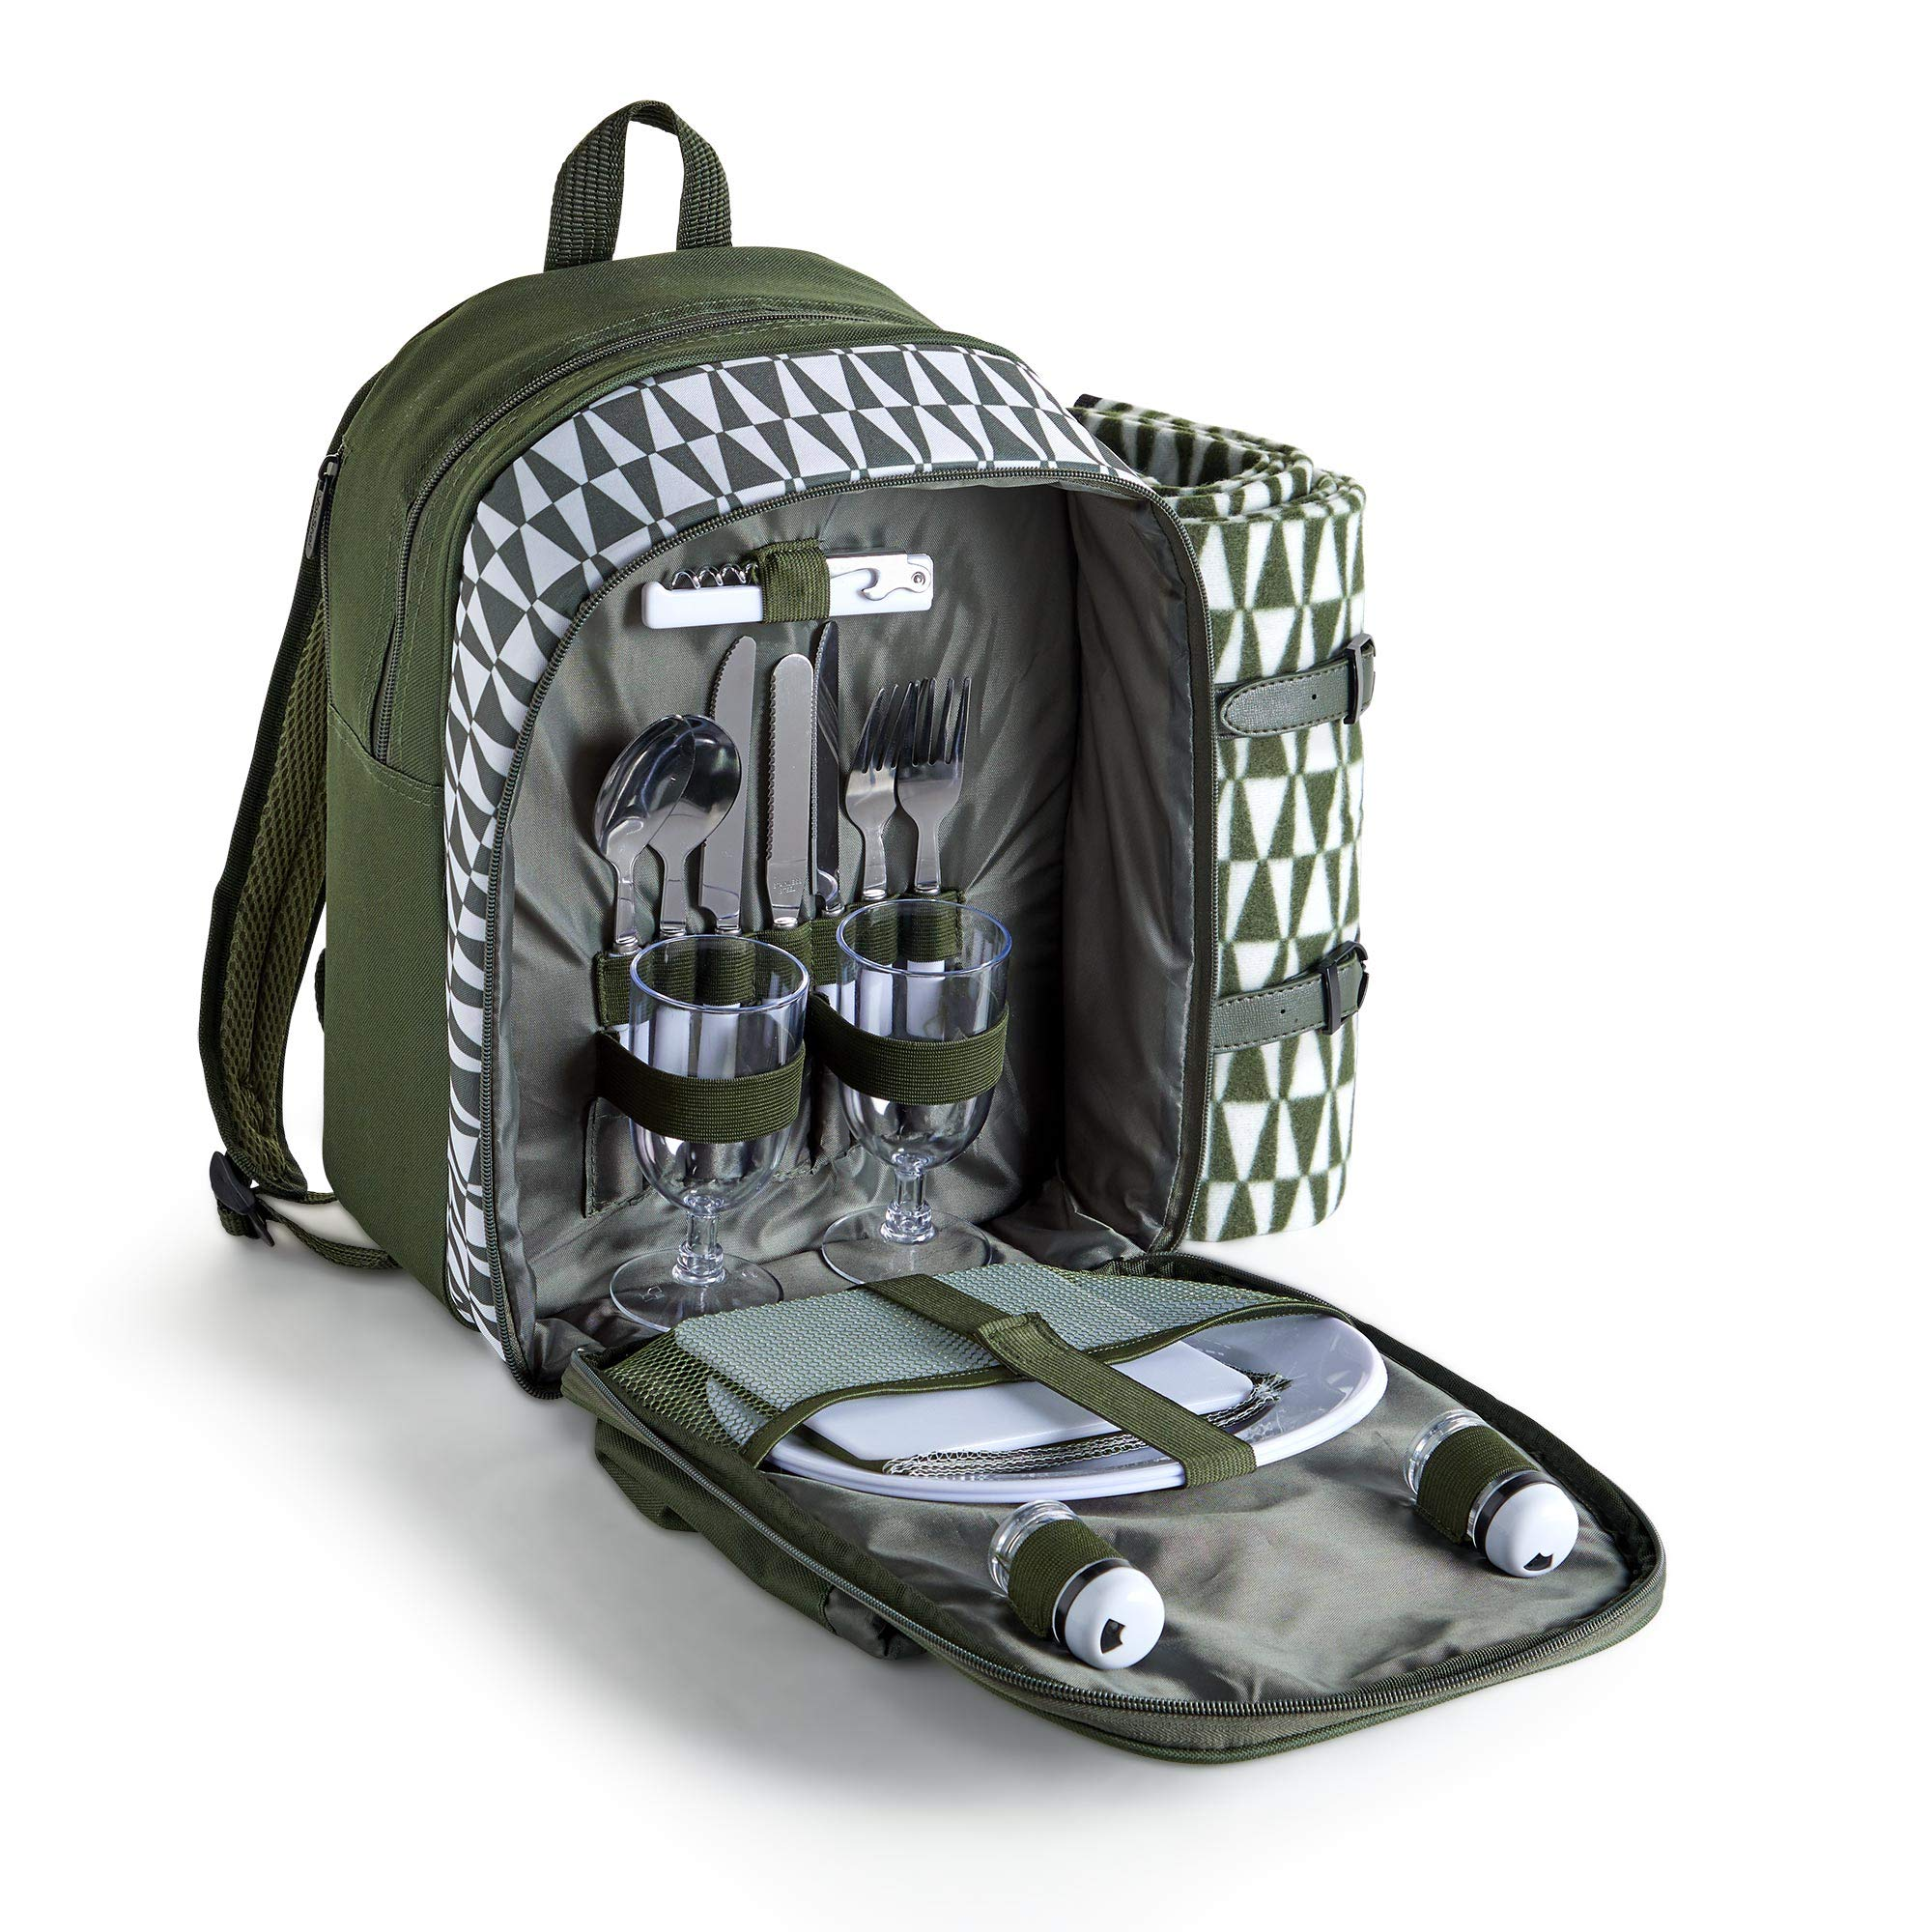 VonShef Picnic Backpack with Insulated Cooler Compartment - Green (2 Person) by VonShef